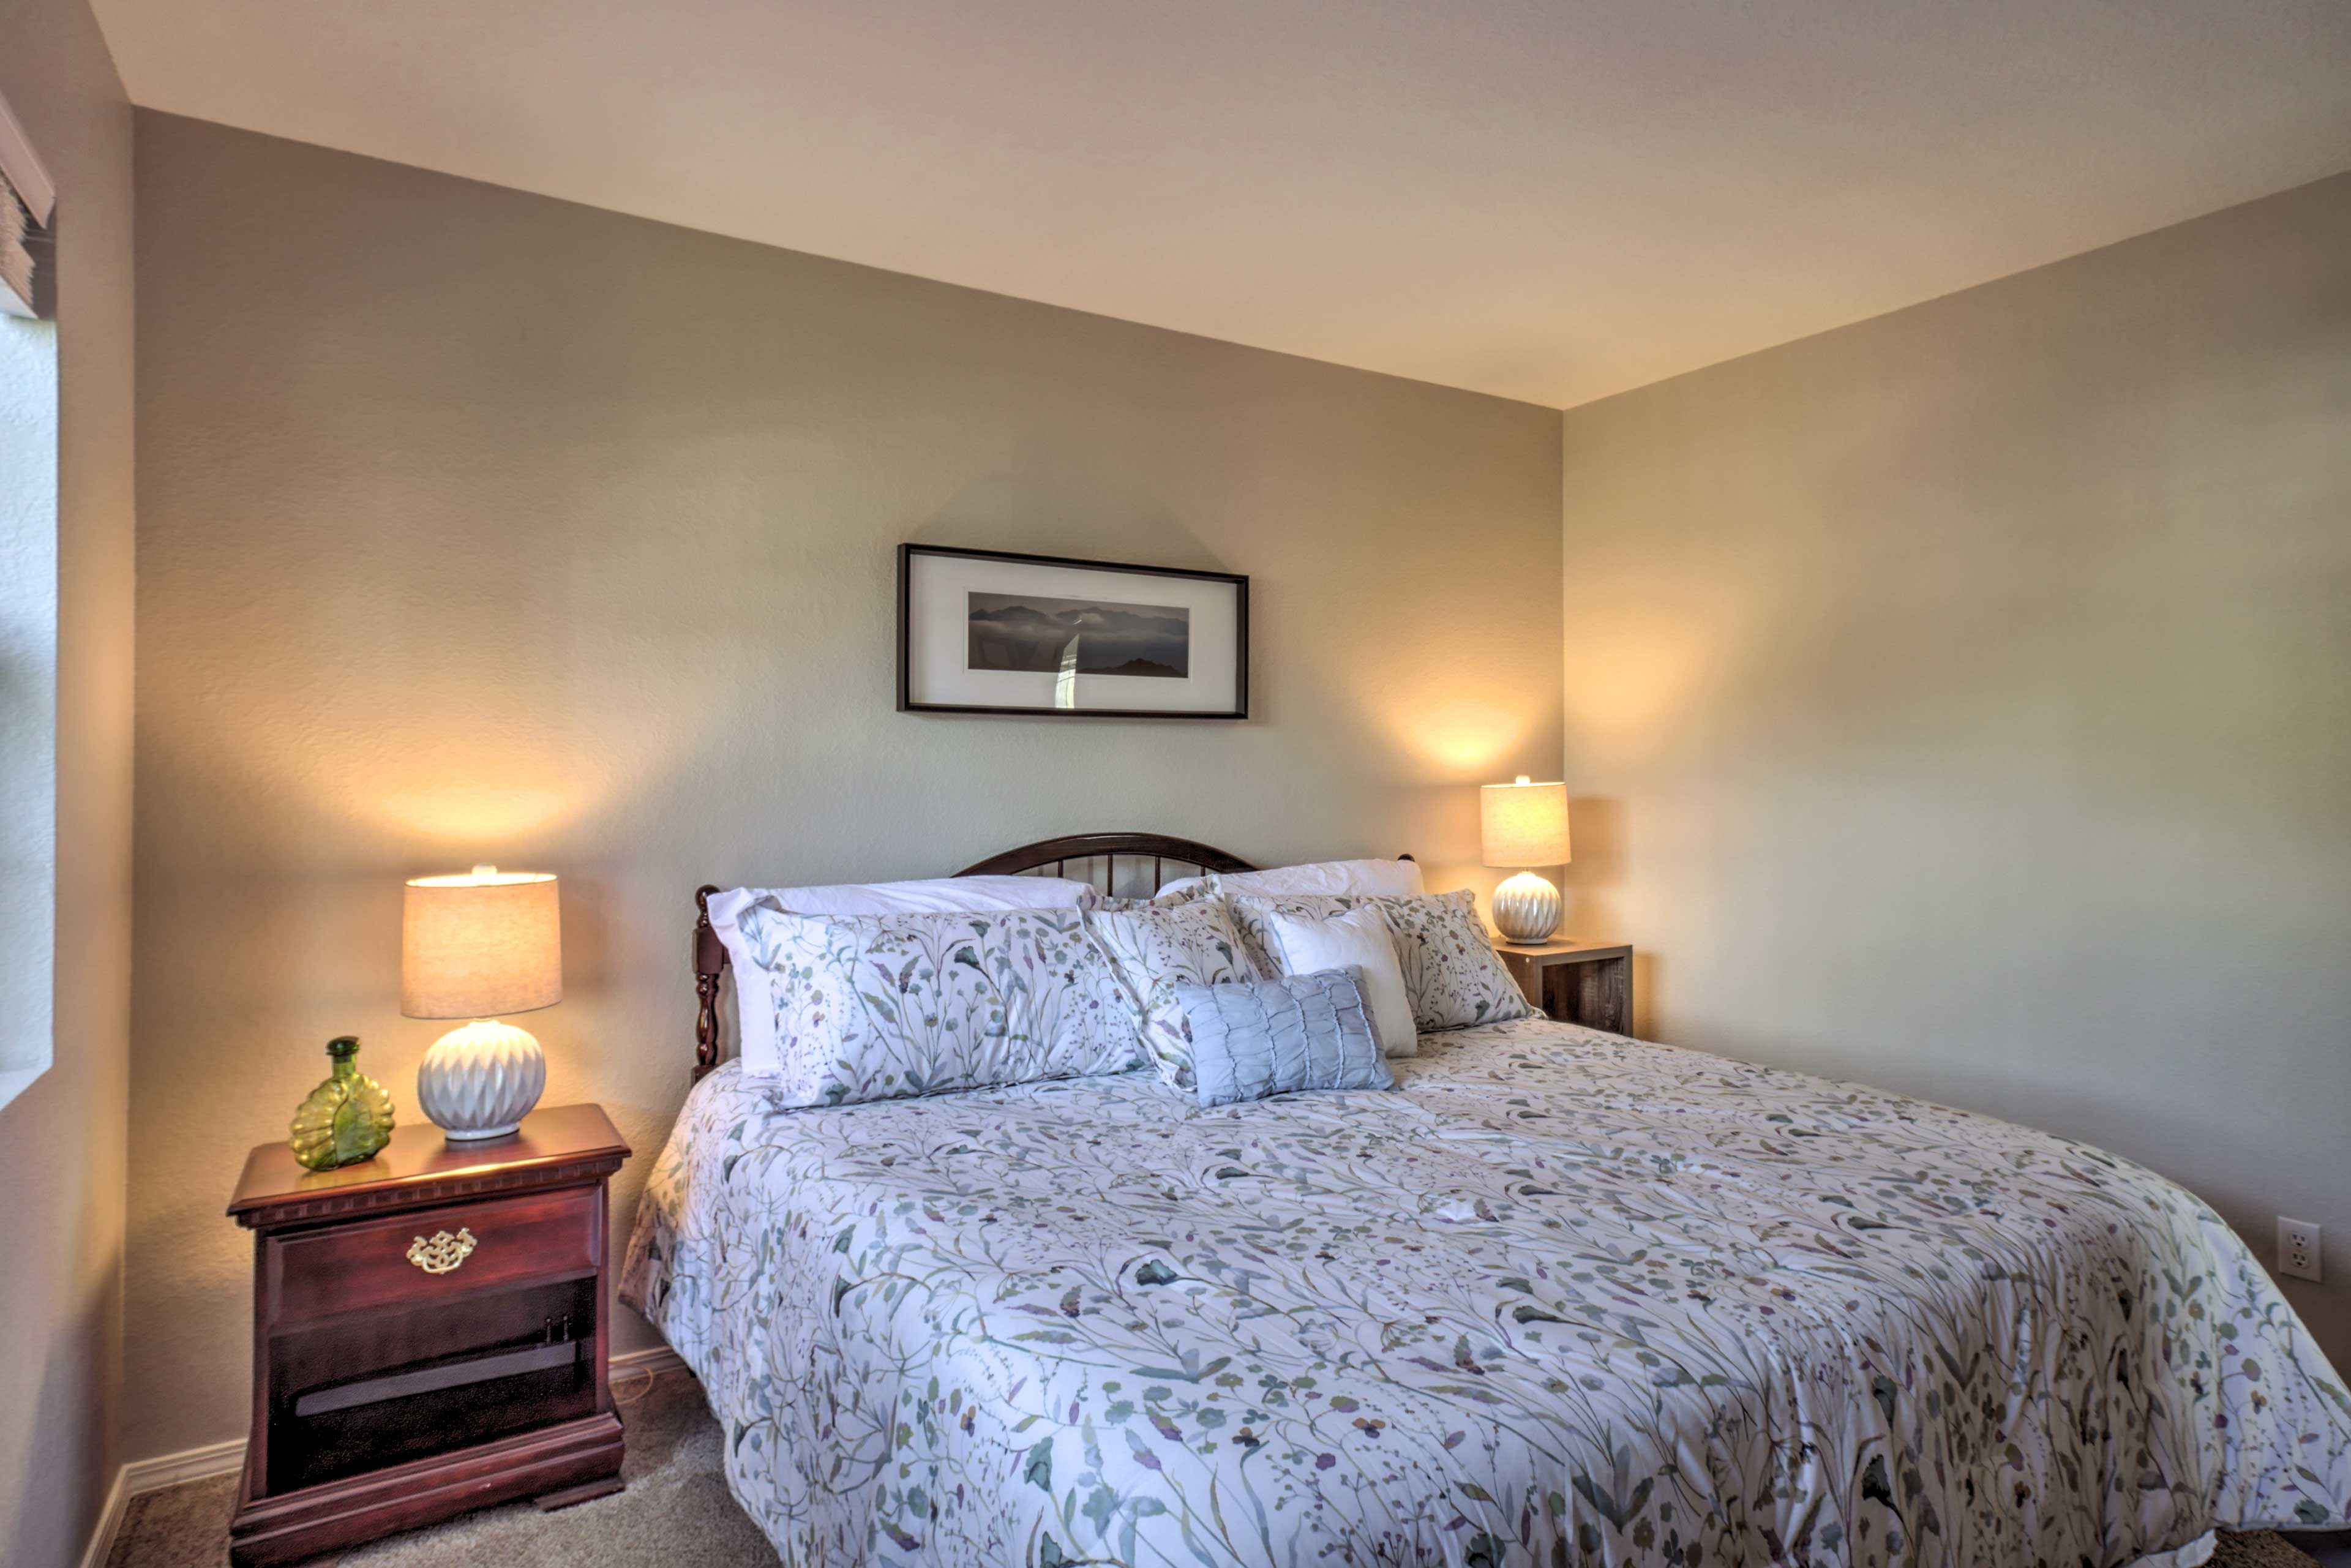 Lay back on the king-sized bed in this room.